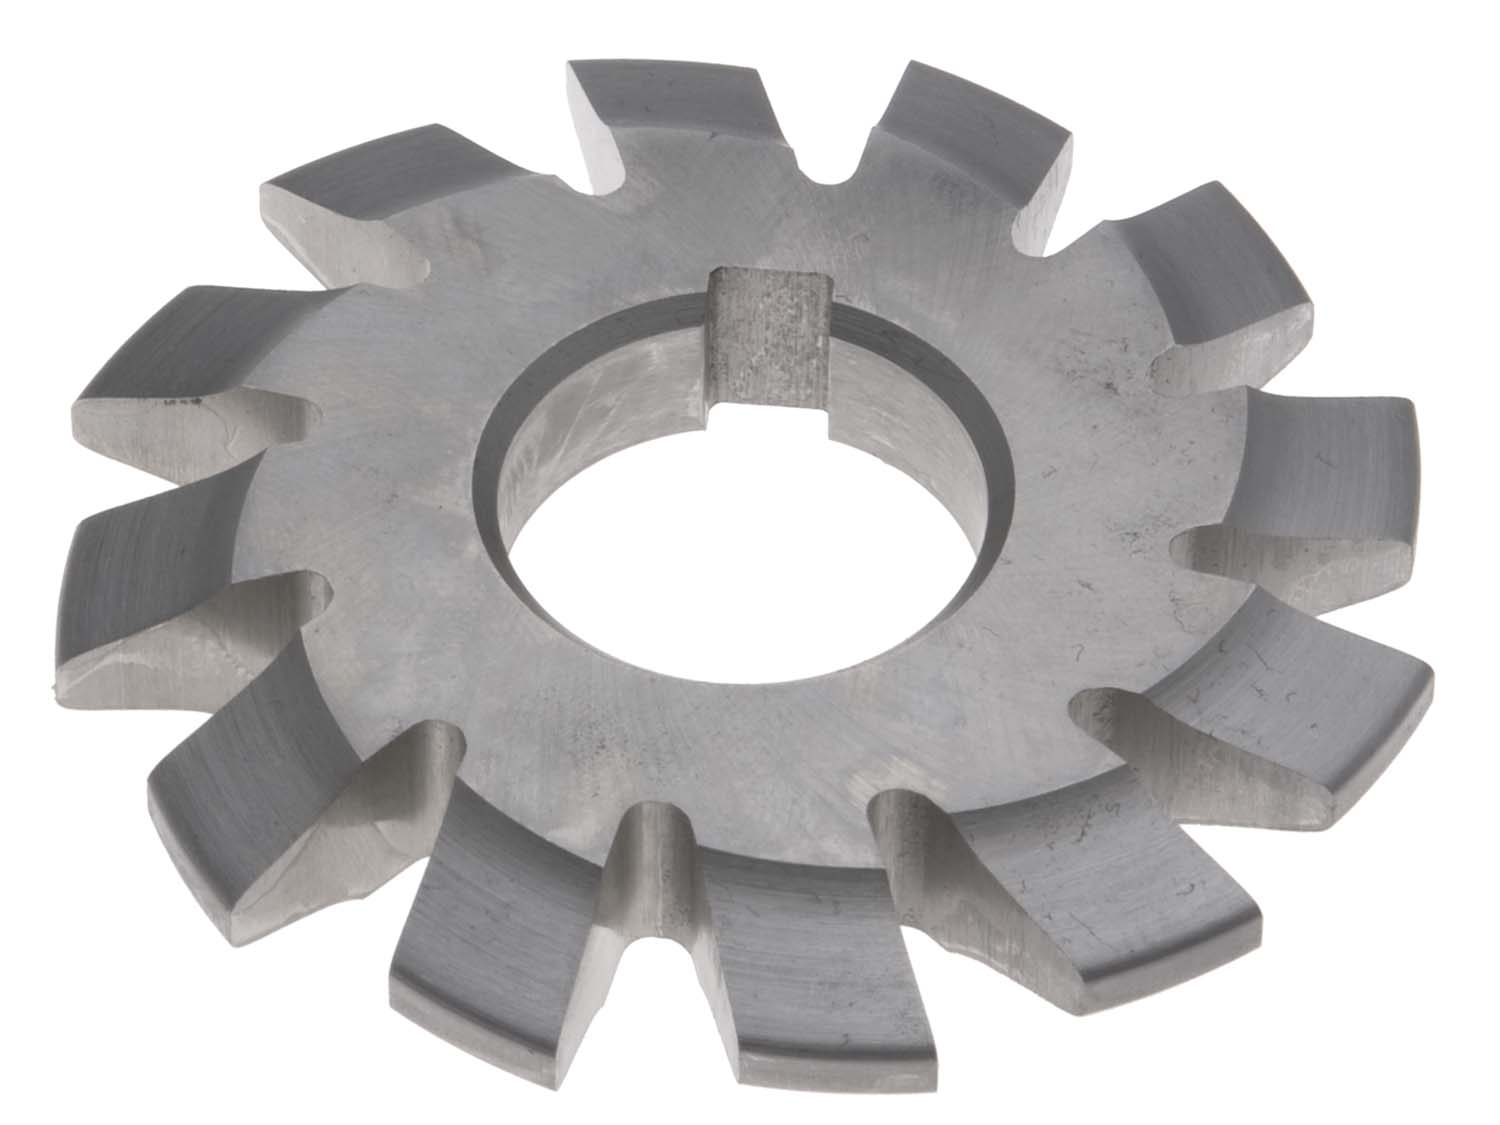 18 Diametral Pitch # 6  Involute Gear Cutter - 1 Inch ID - 14-1/2 Degree Pressure Angle